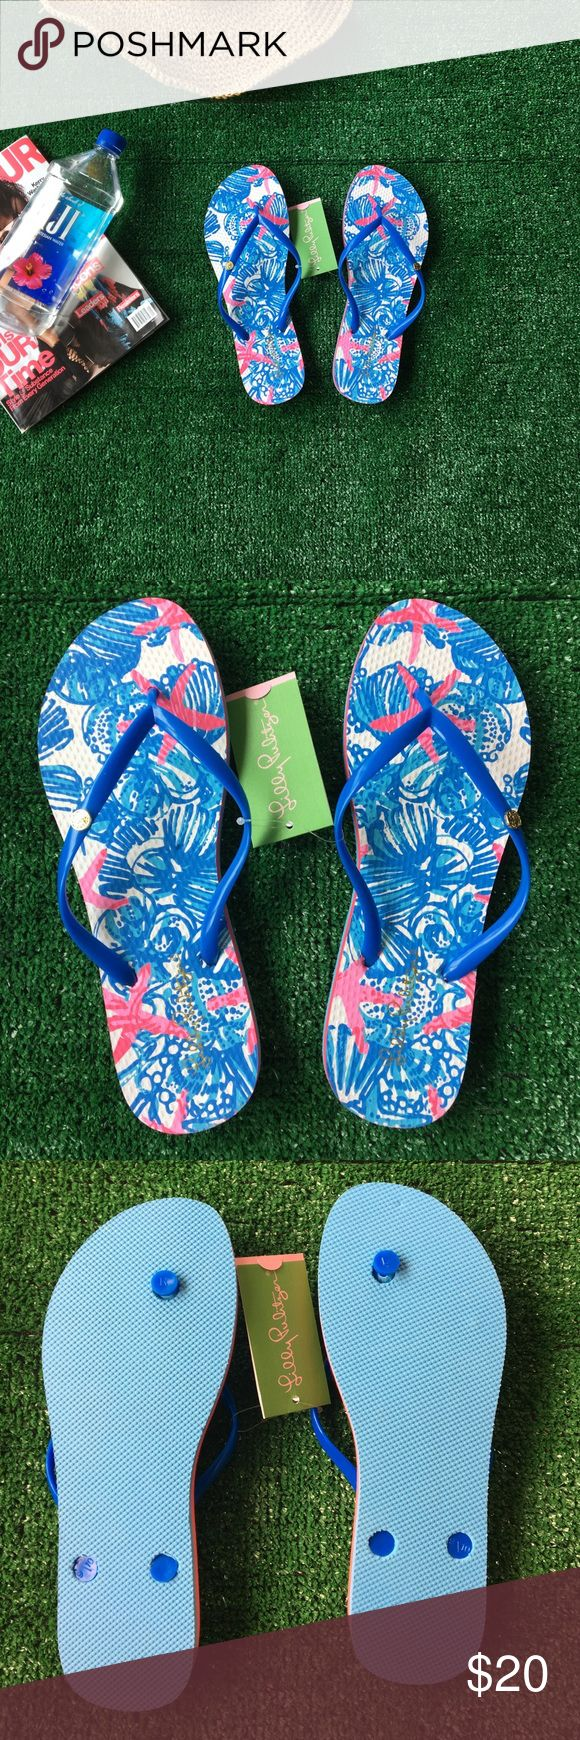 Lilly Pulitzer Pool Flip Flops Lilly Pulitzer Pool Flip Flops Bay Blue She She Shells Print size 9/10 new Lilly Pulitzer Shoes Sandals